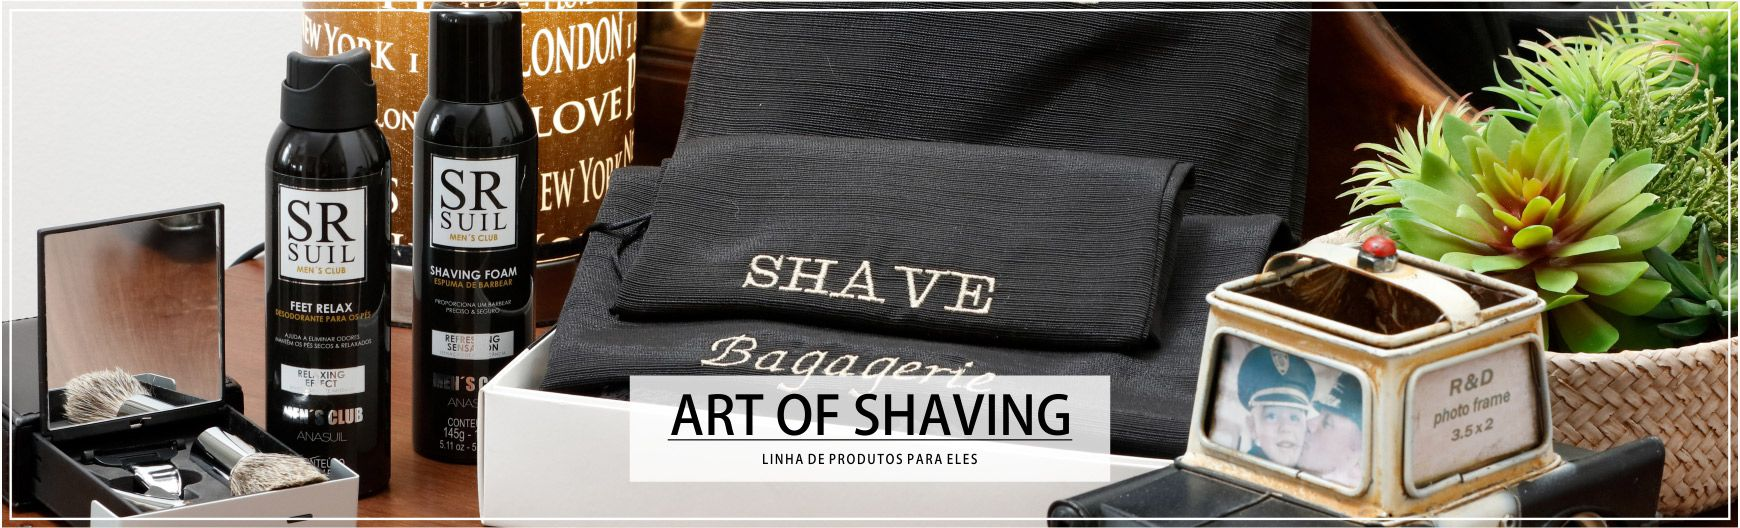 [Banner Anasuil Art of shaving]